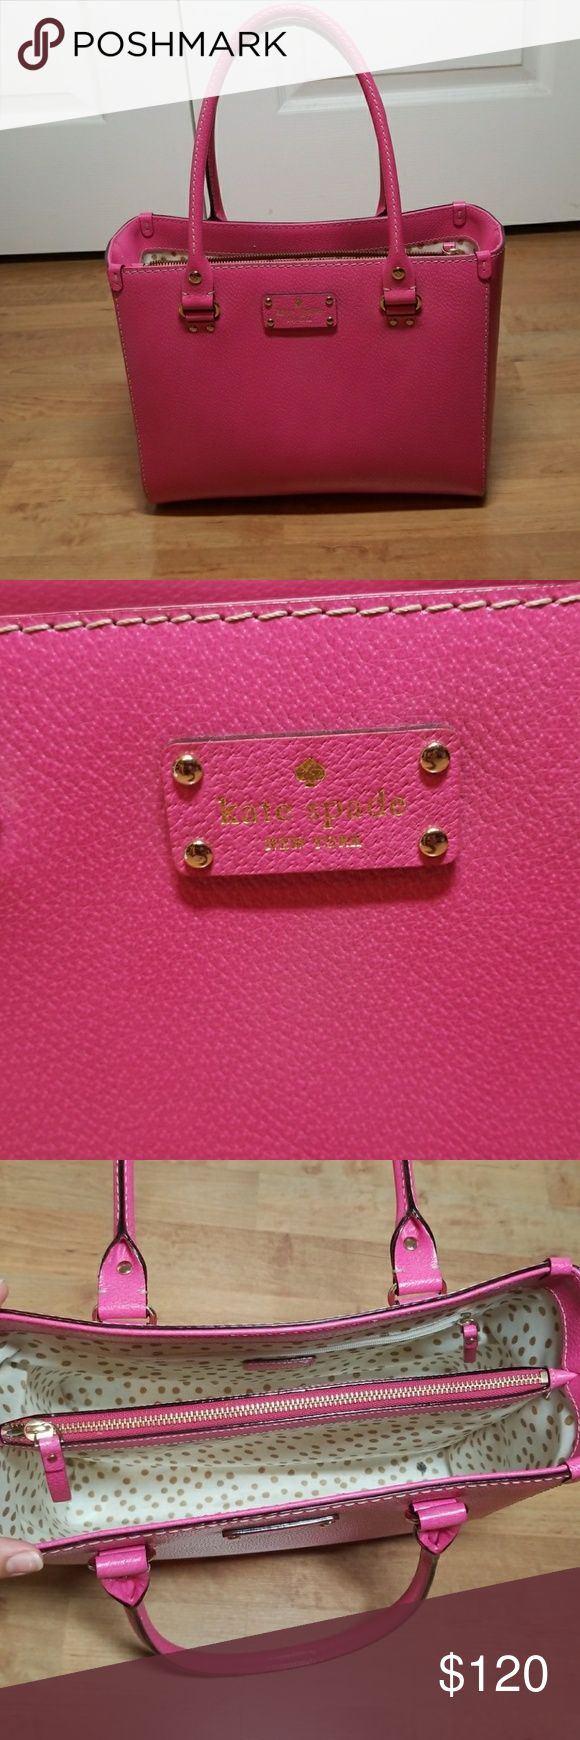 """Kate Spade Pink Purse Lightly used Kate Spade purse. One pocket on the side and one middle pocket.   Front 9x11.5"""" and bottom 4x11.5"""" kate spade Bags"""